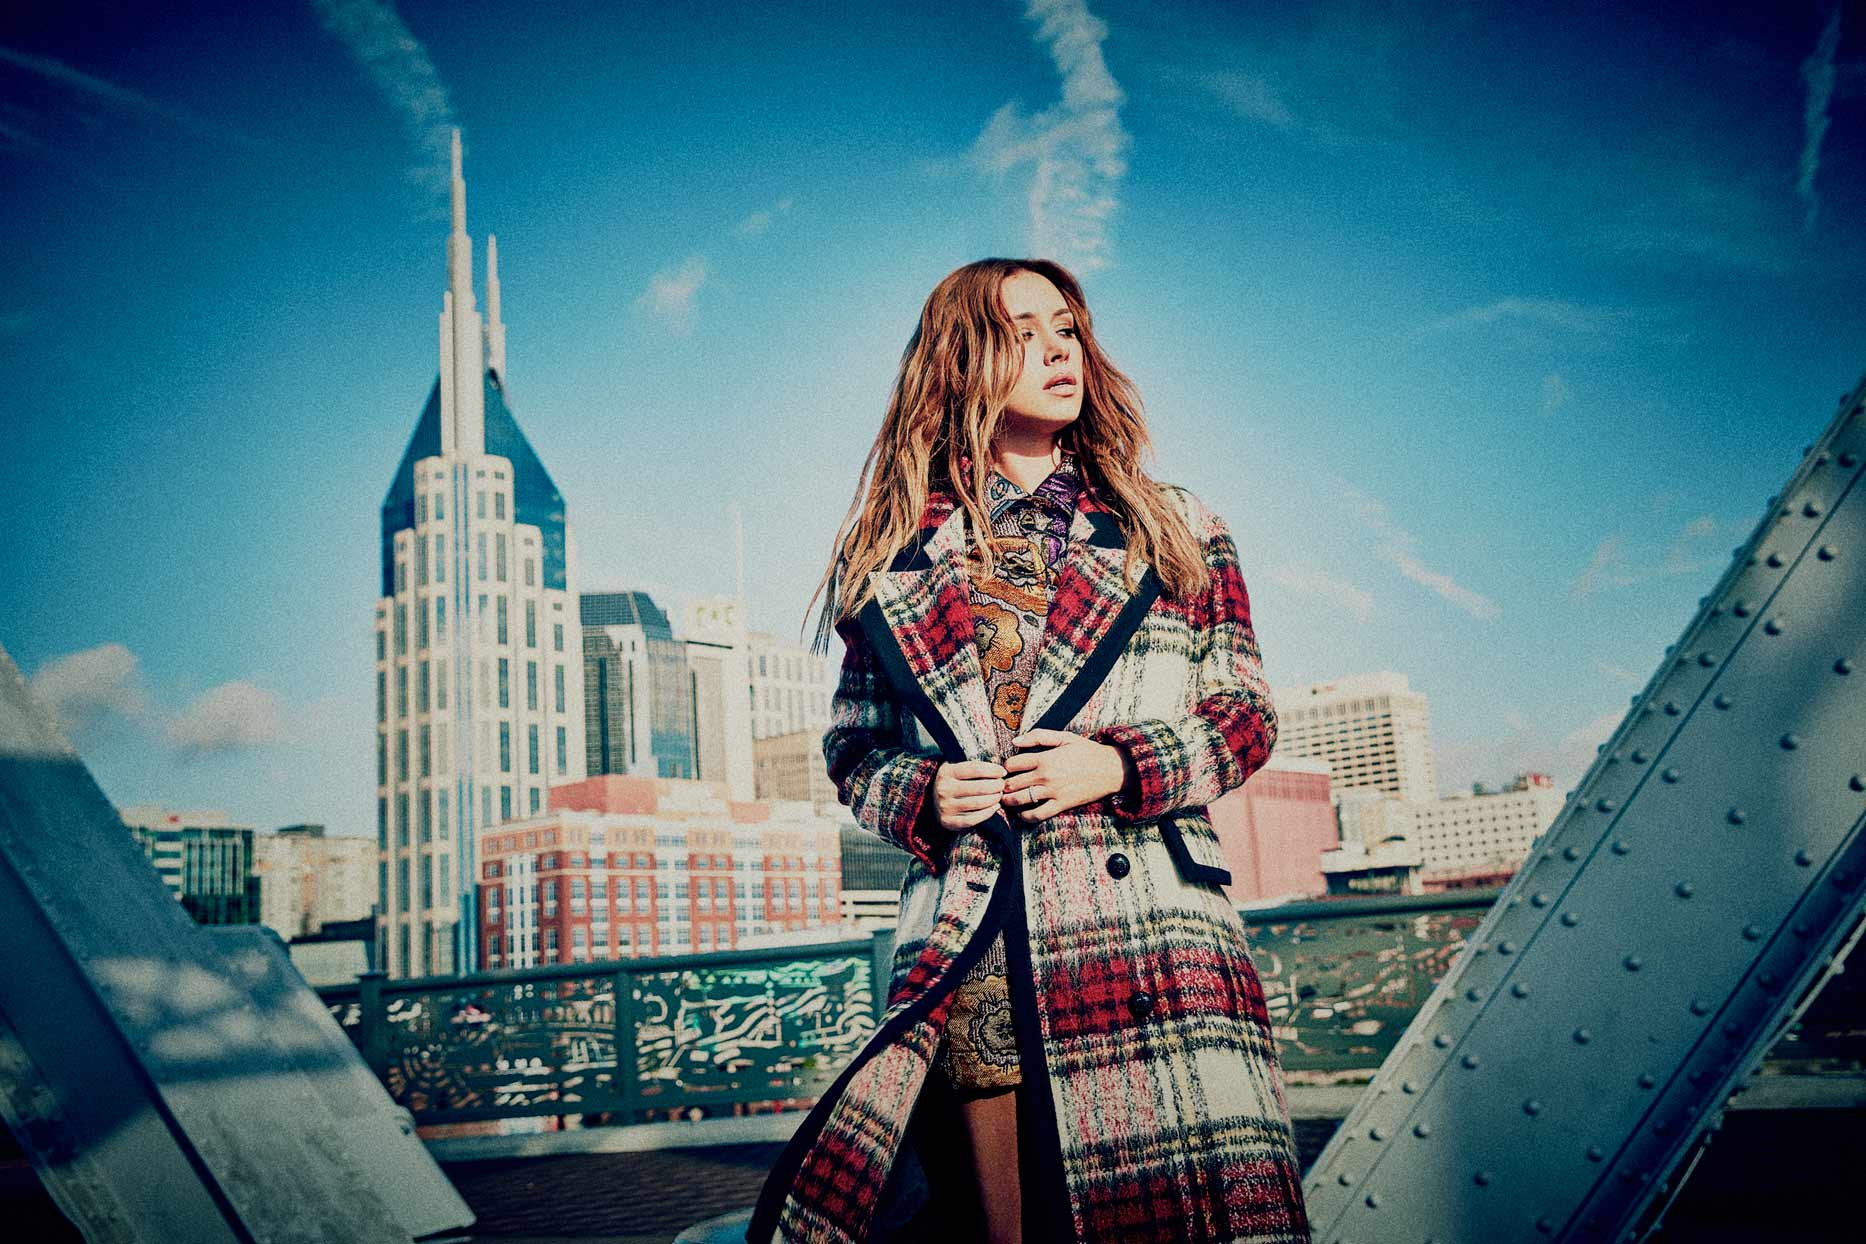 Mark DeLong - Celebrity Photographer - Actress in a plaid coat in front of a city landscape.